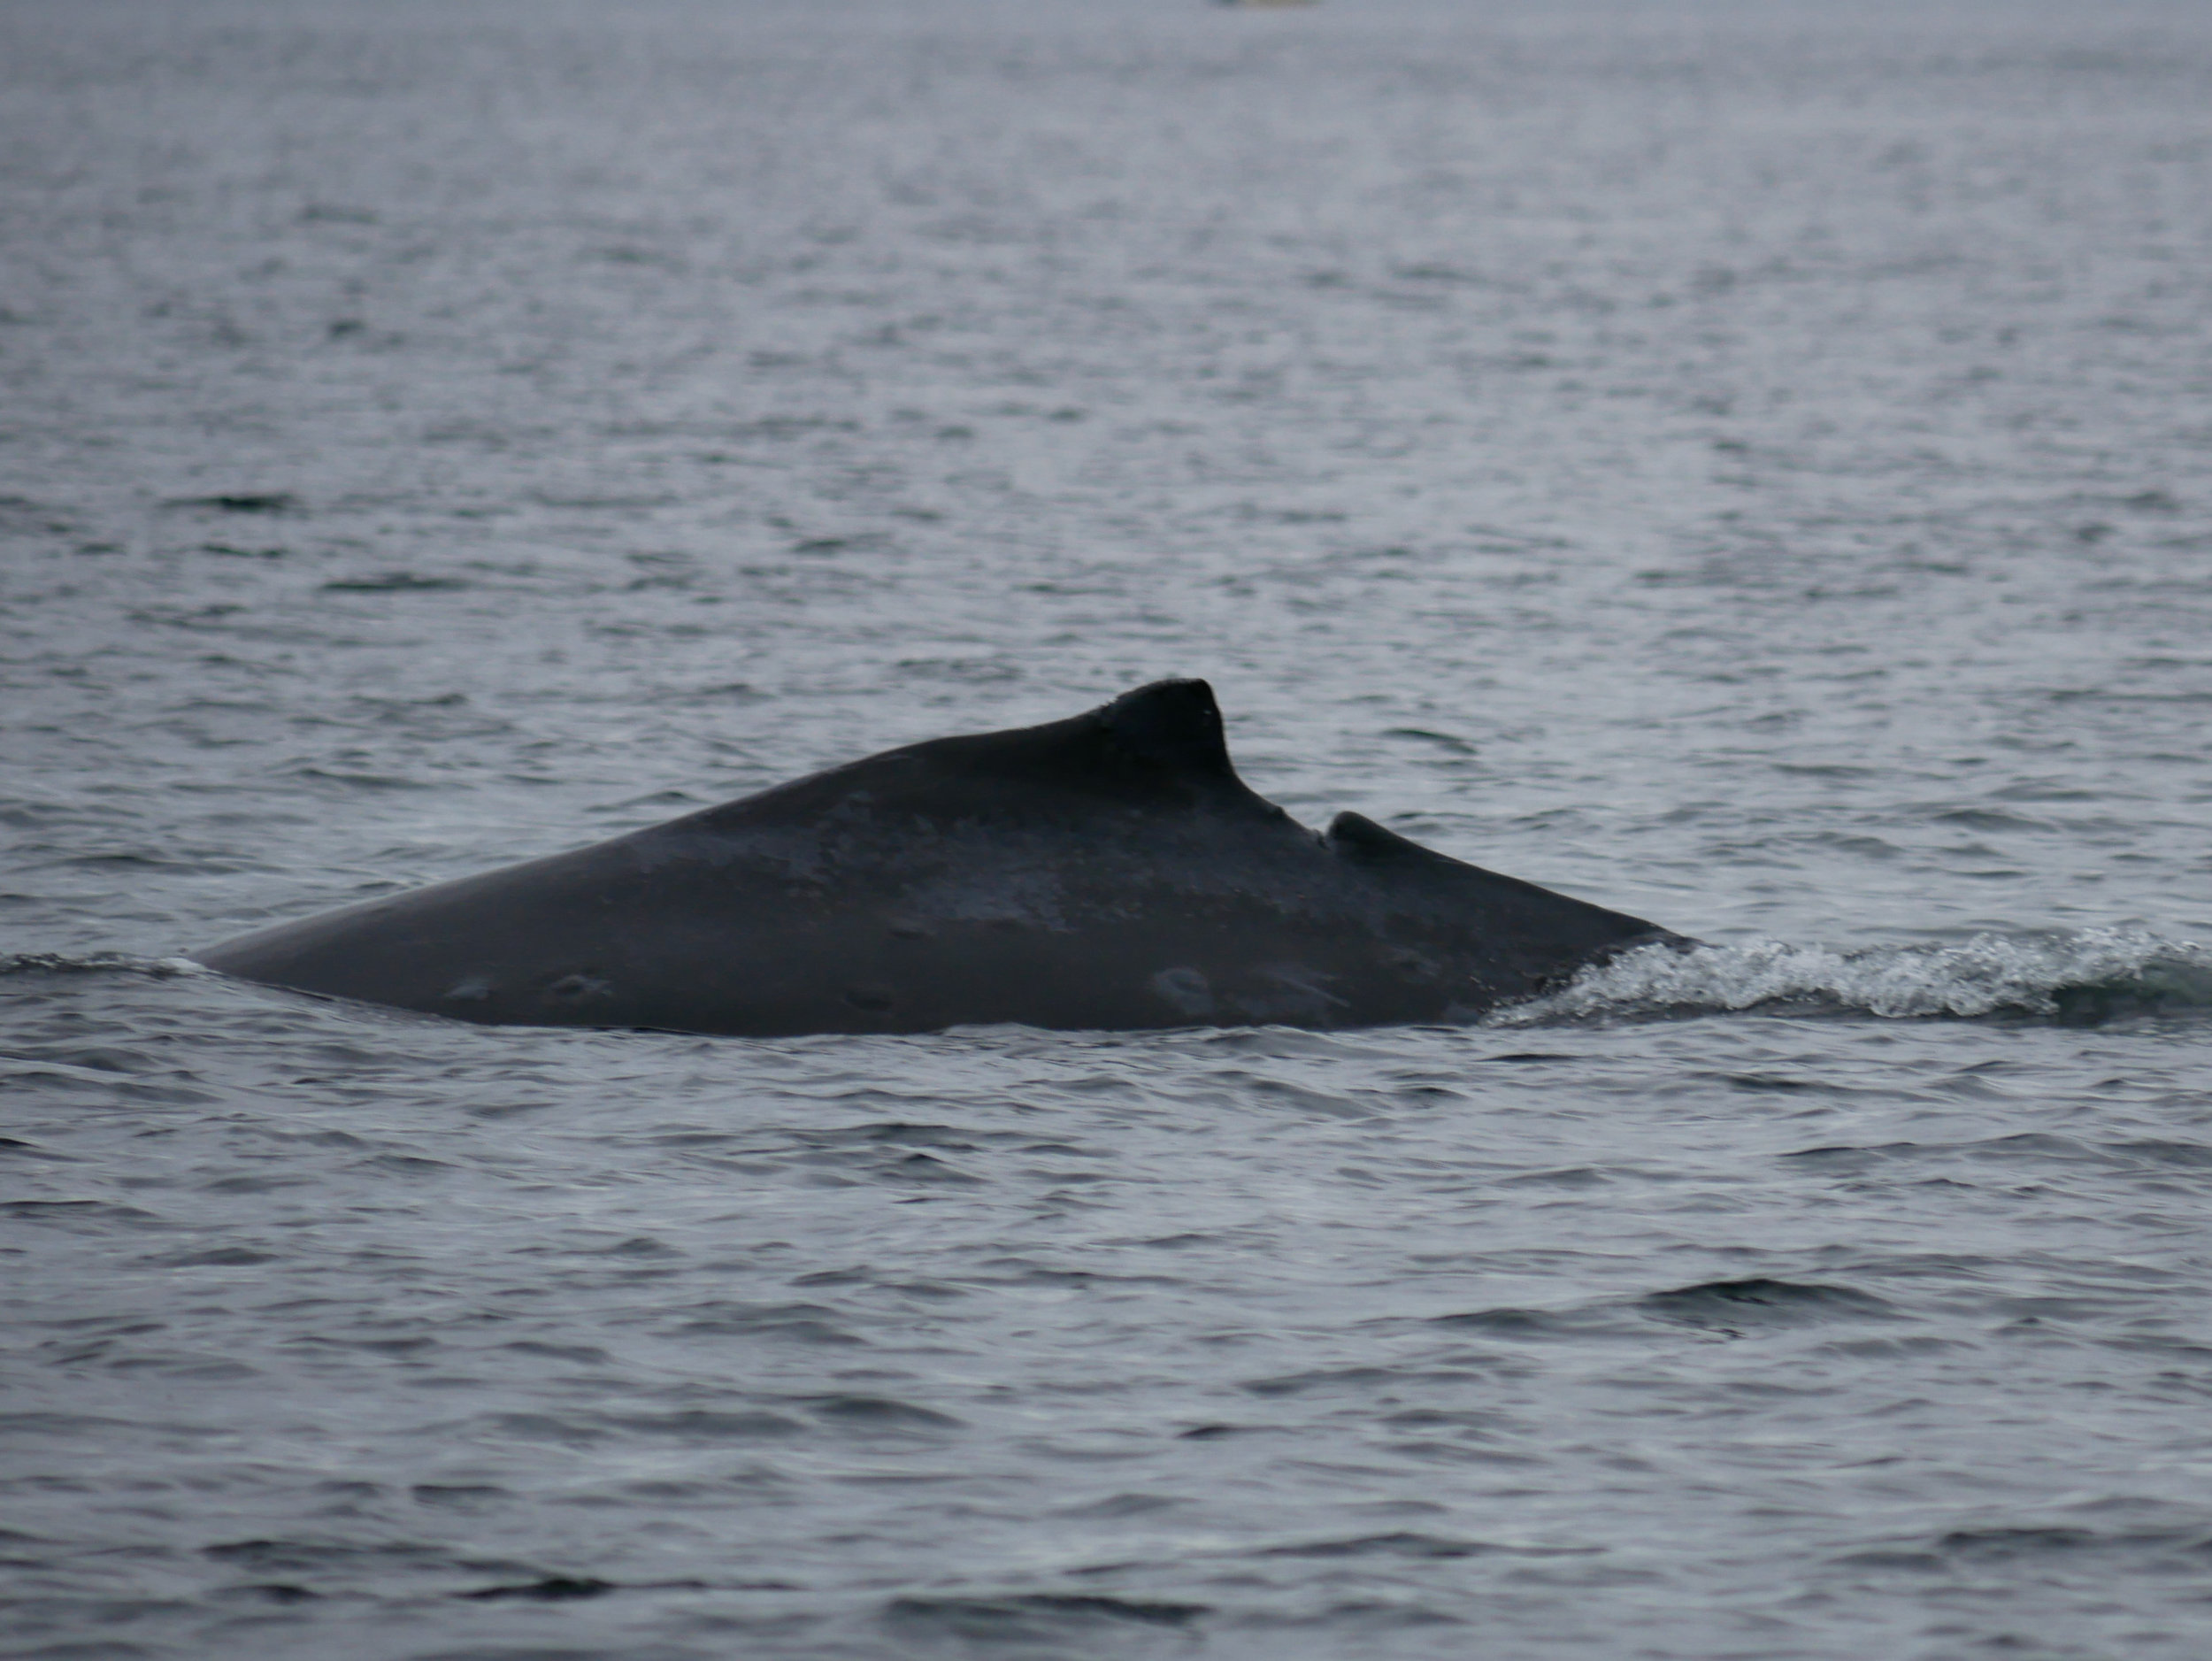 This whale will be easy to identify in the future because of its unfortunate accident. Photo by Val Watson